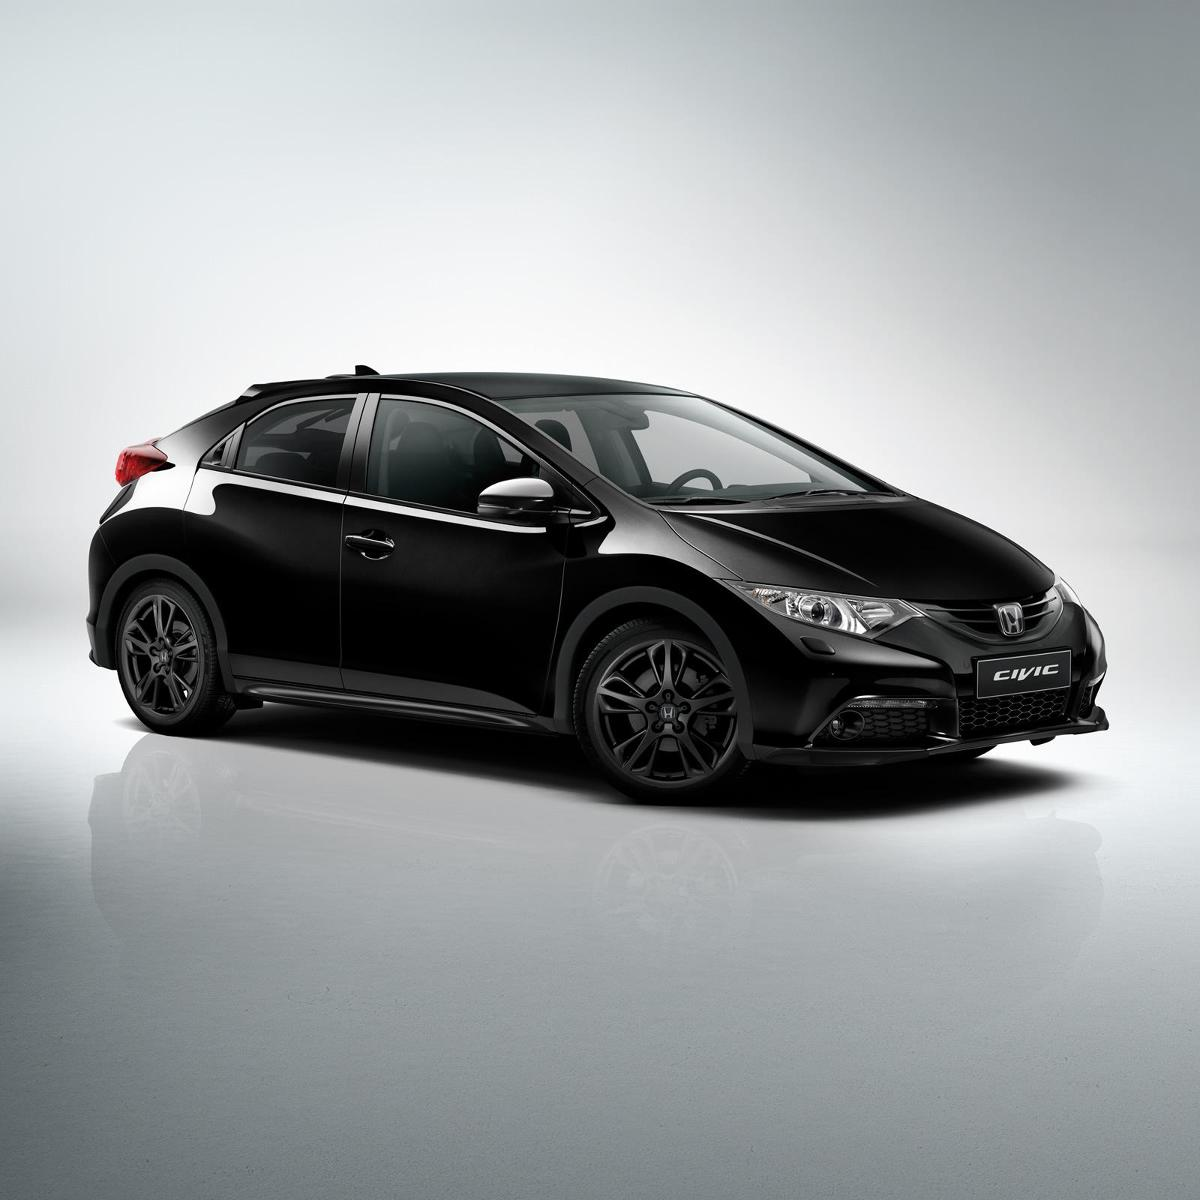 Honda Civic Black Edition / Fot. Honda